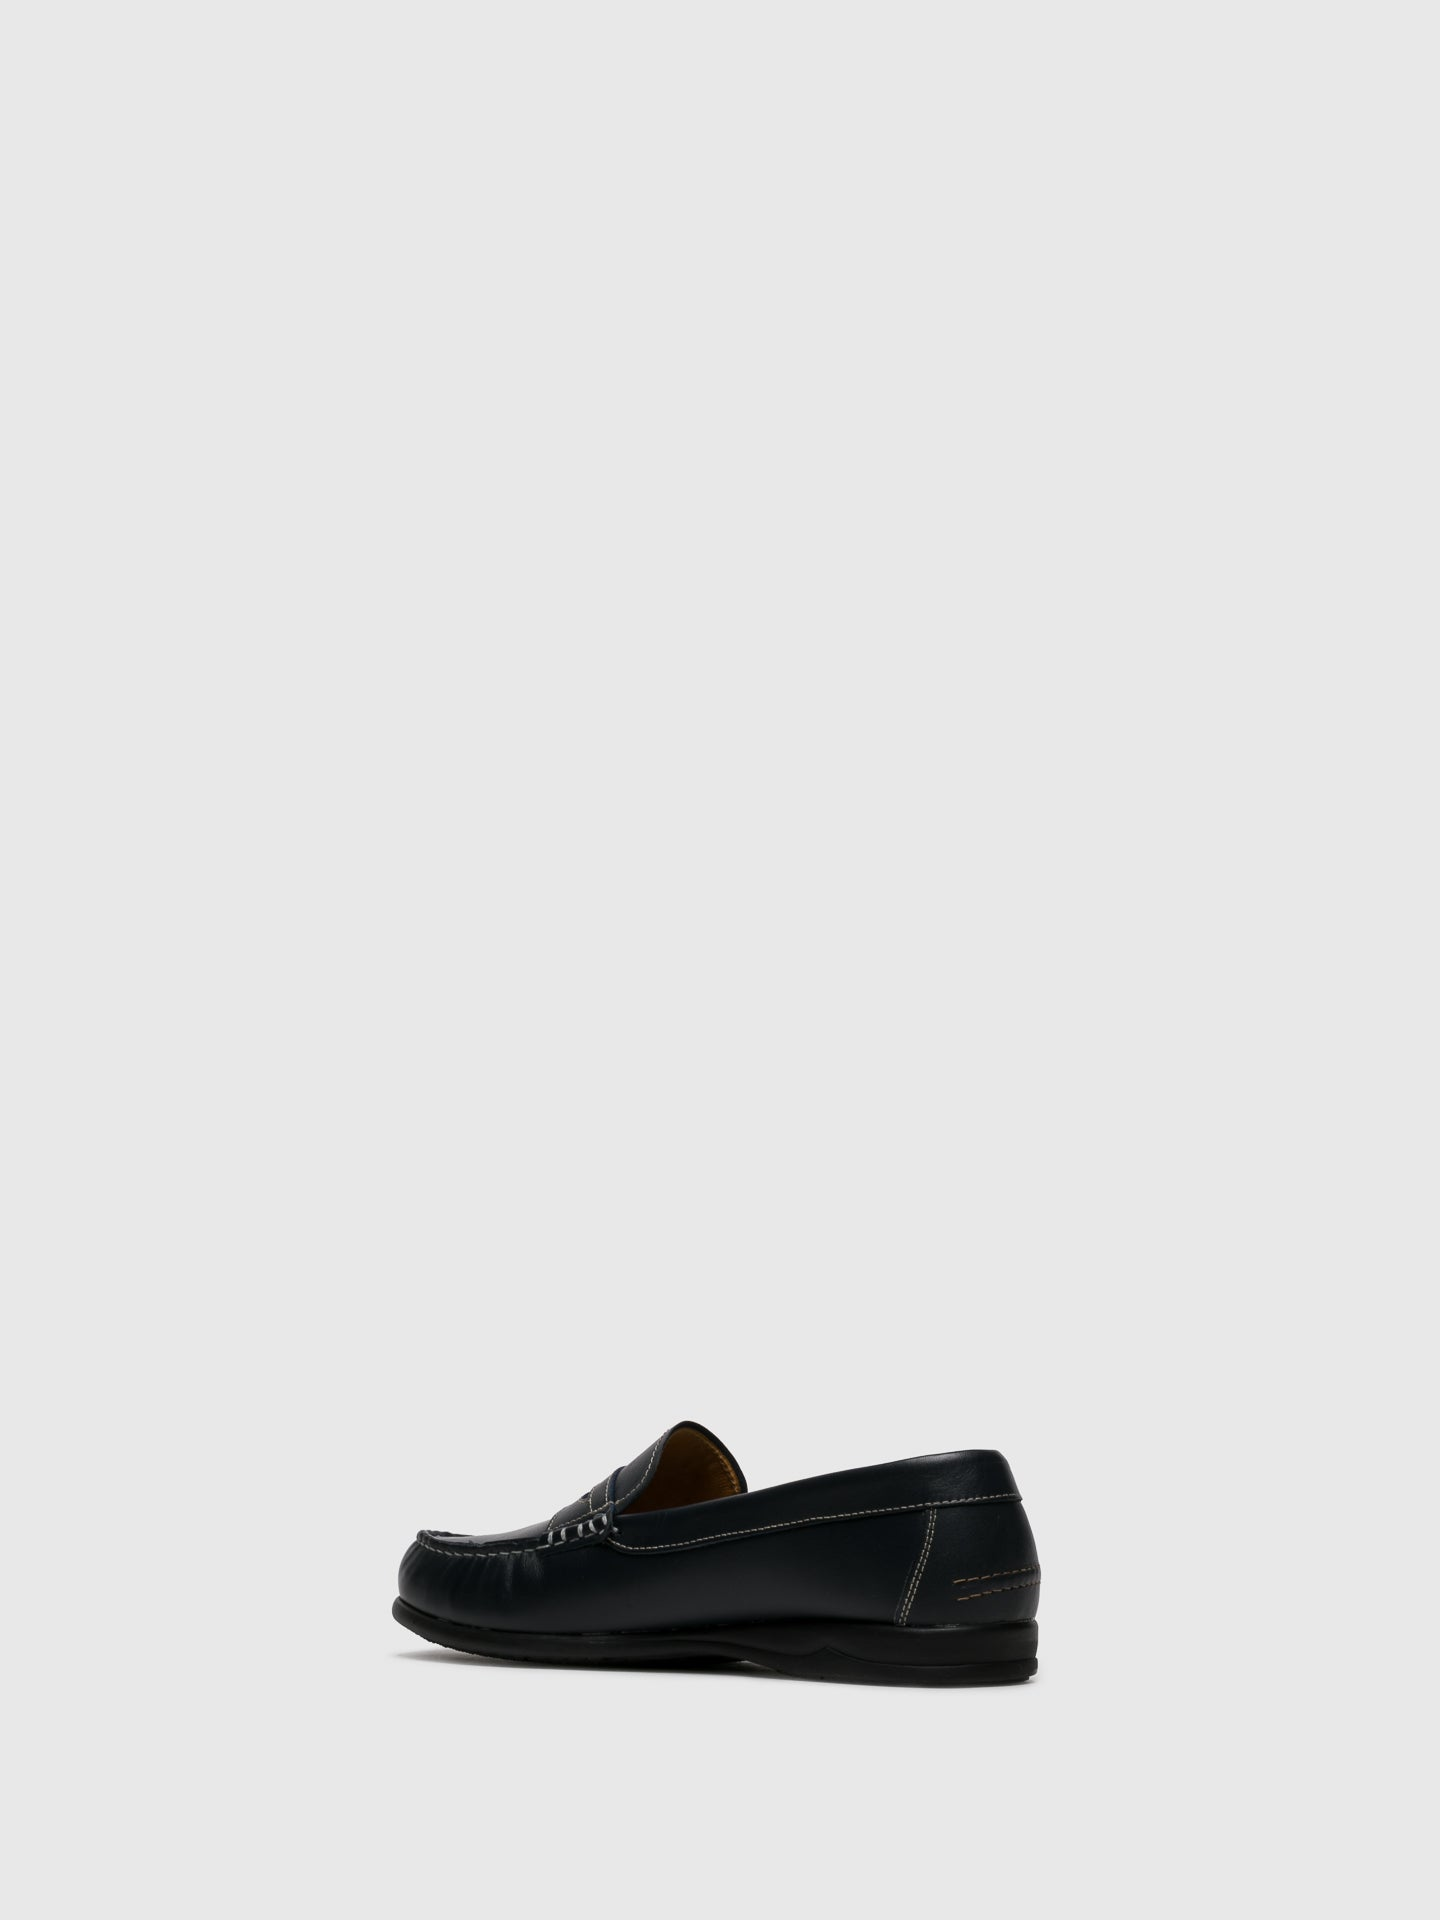 Sotoalto Blue Loafers Shoes